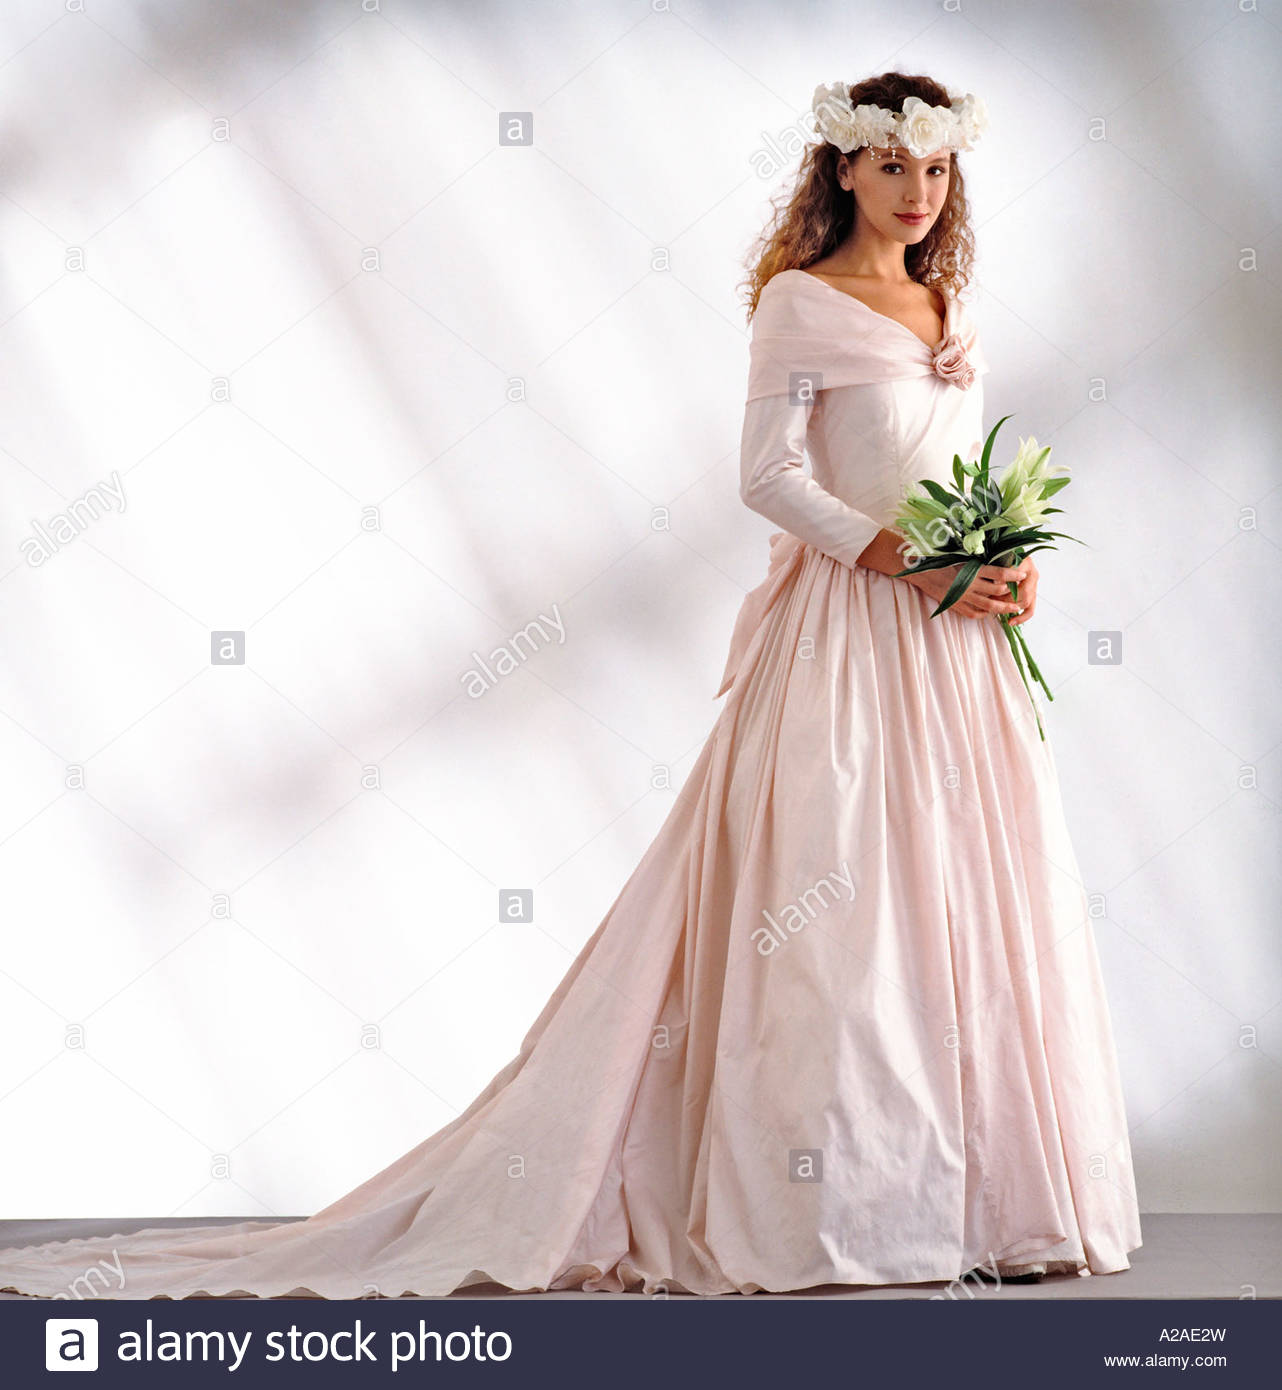 Long Pink Gown Stockfotos & Long Pink Gown Bilder - Alamy